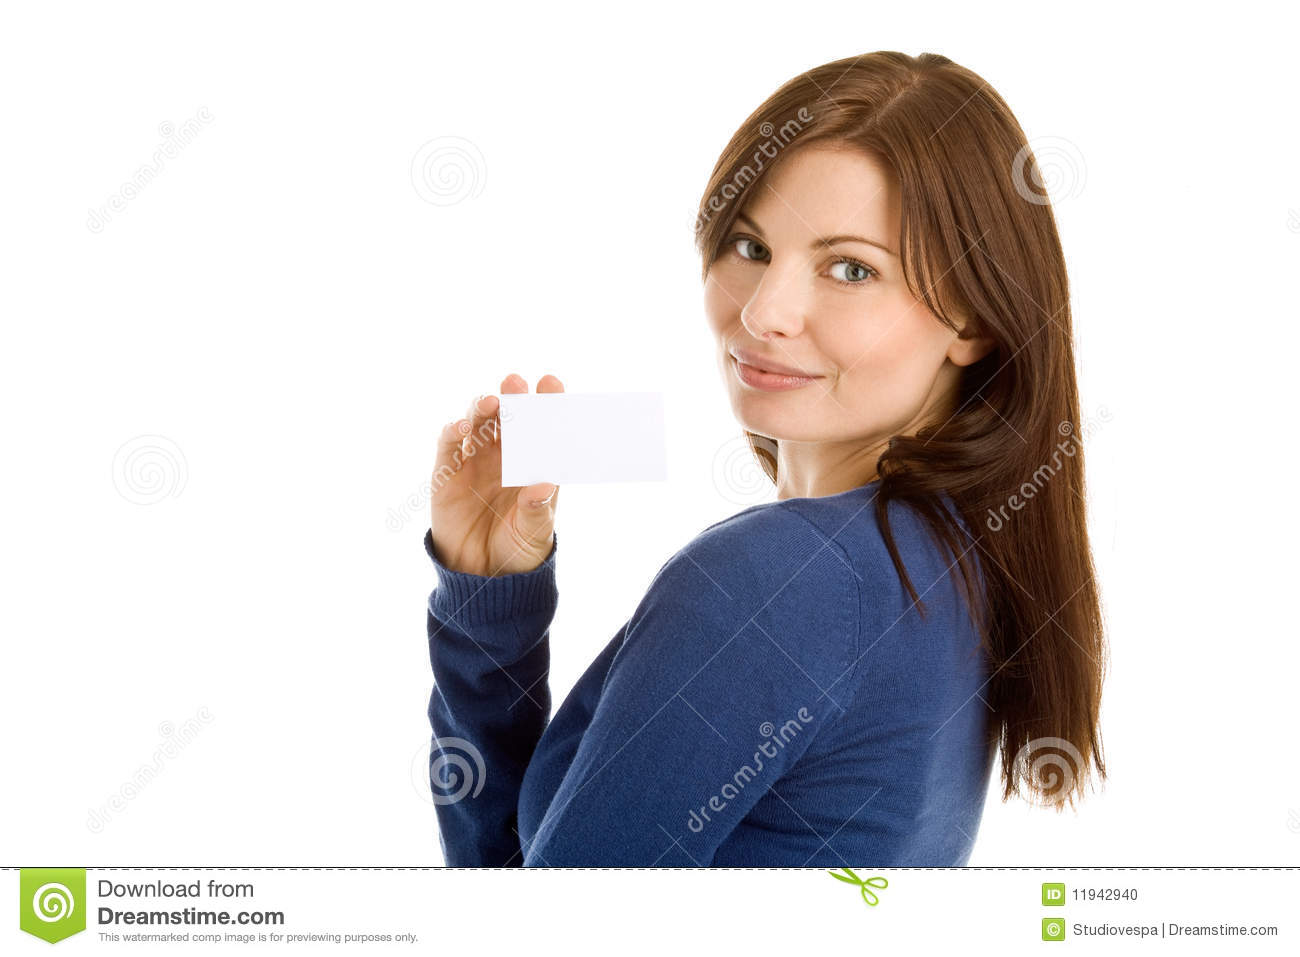 Woman holding blank business card